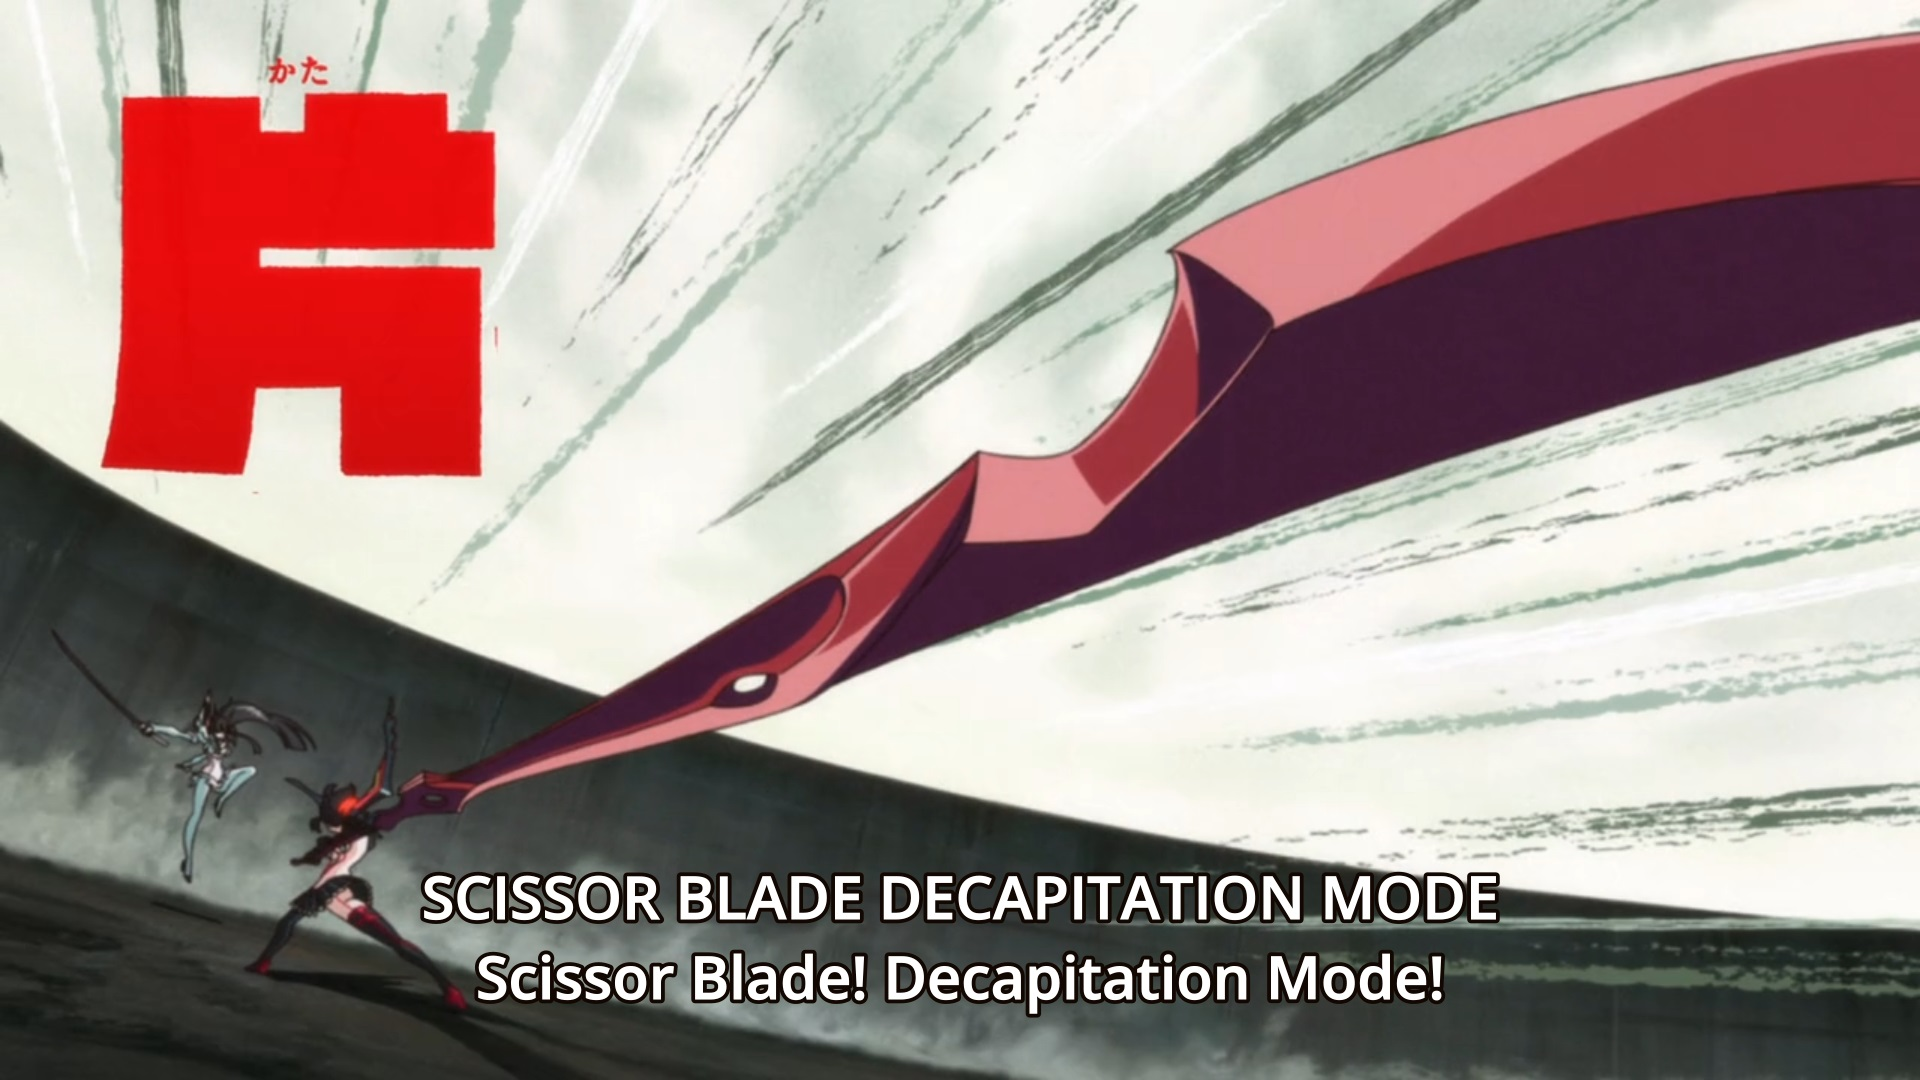 Killlakill_ep3_scissorblade_decapitation_mode.jpg